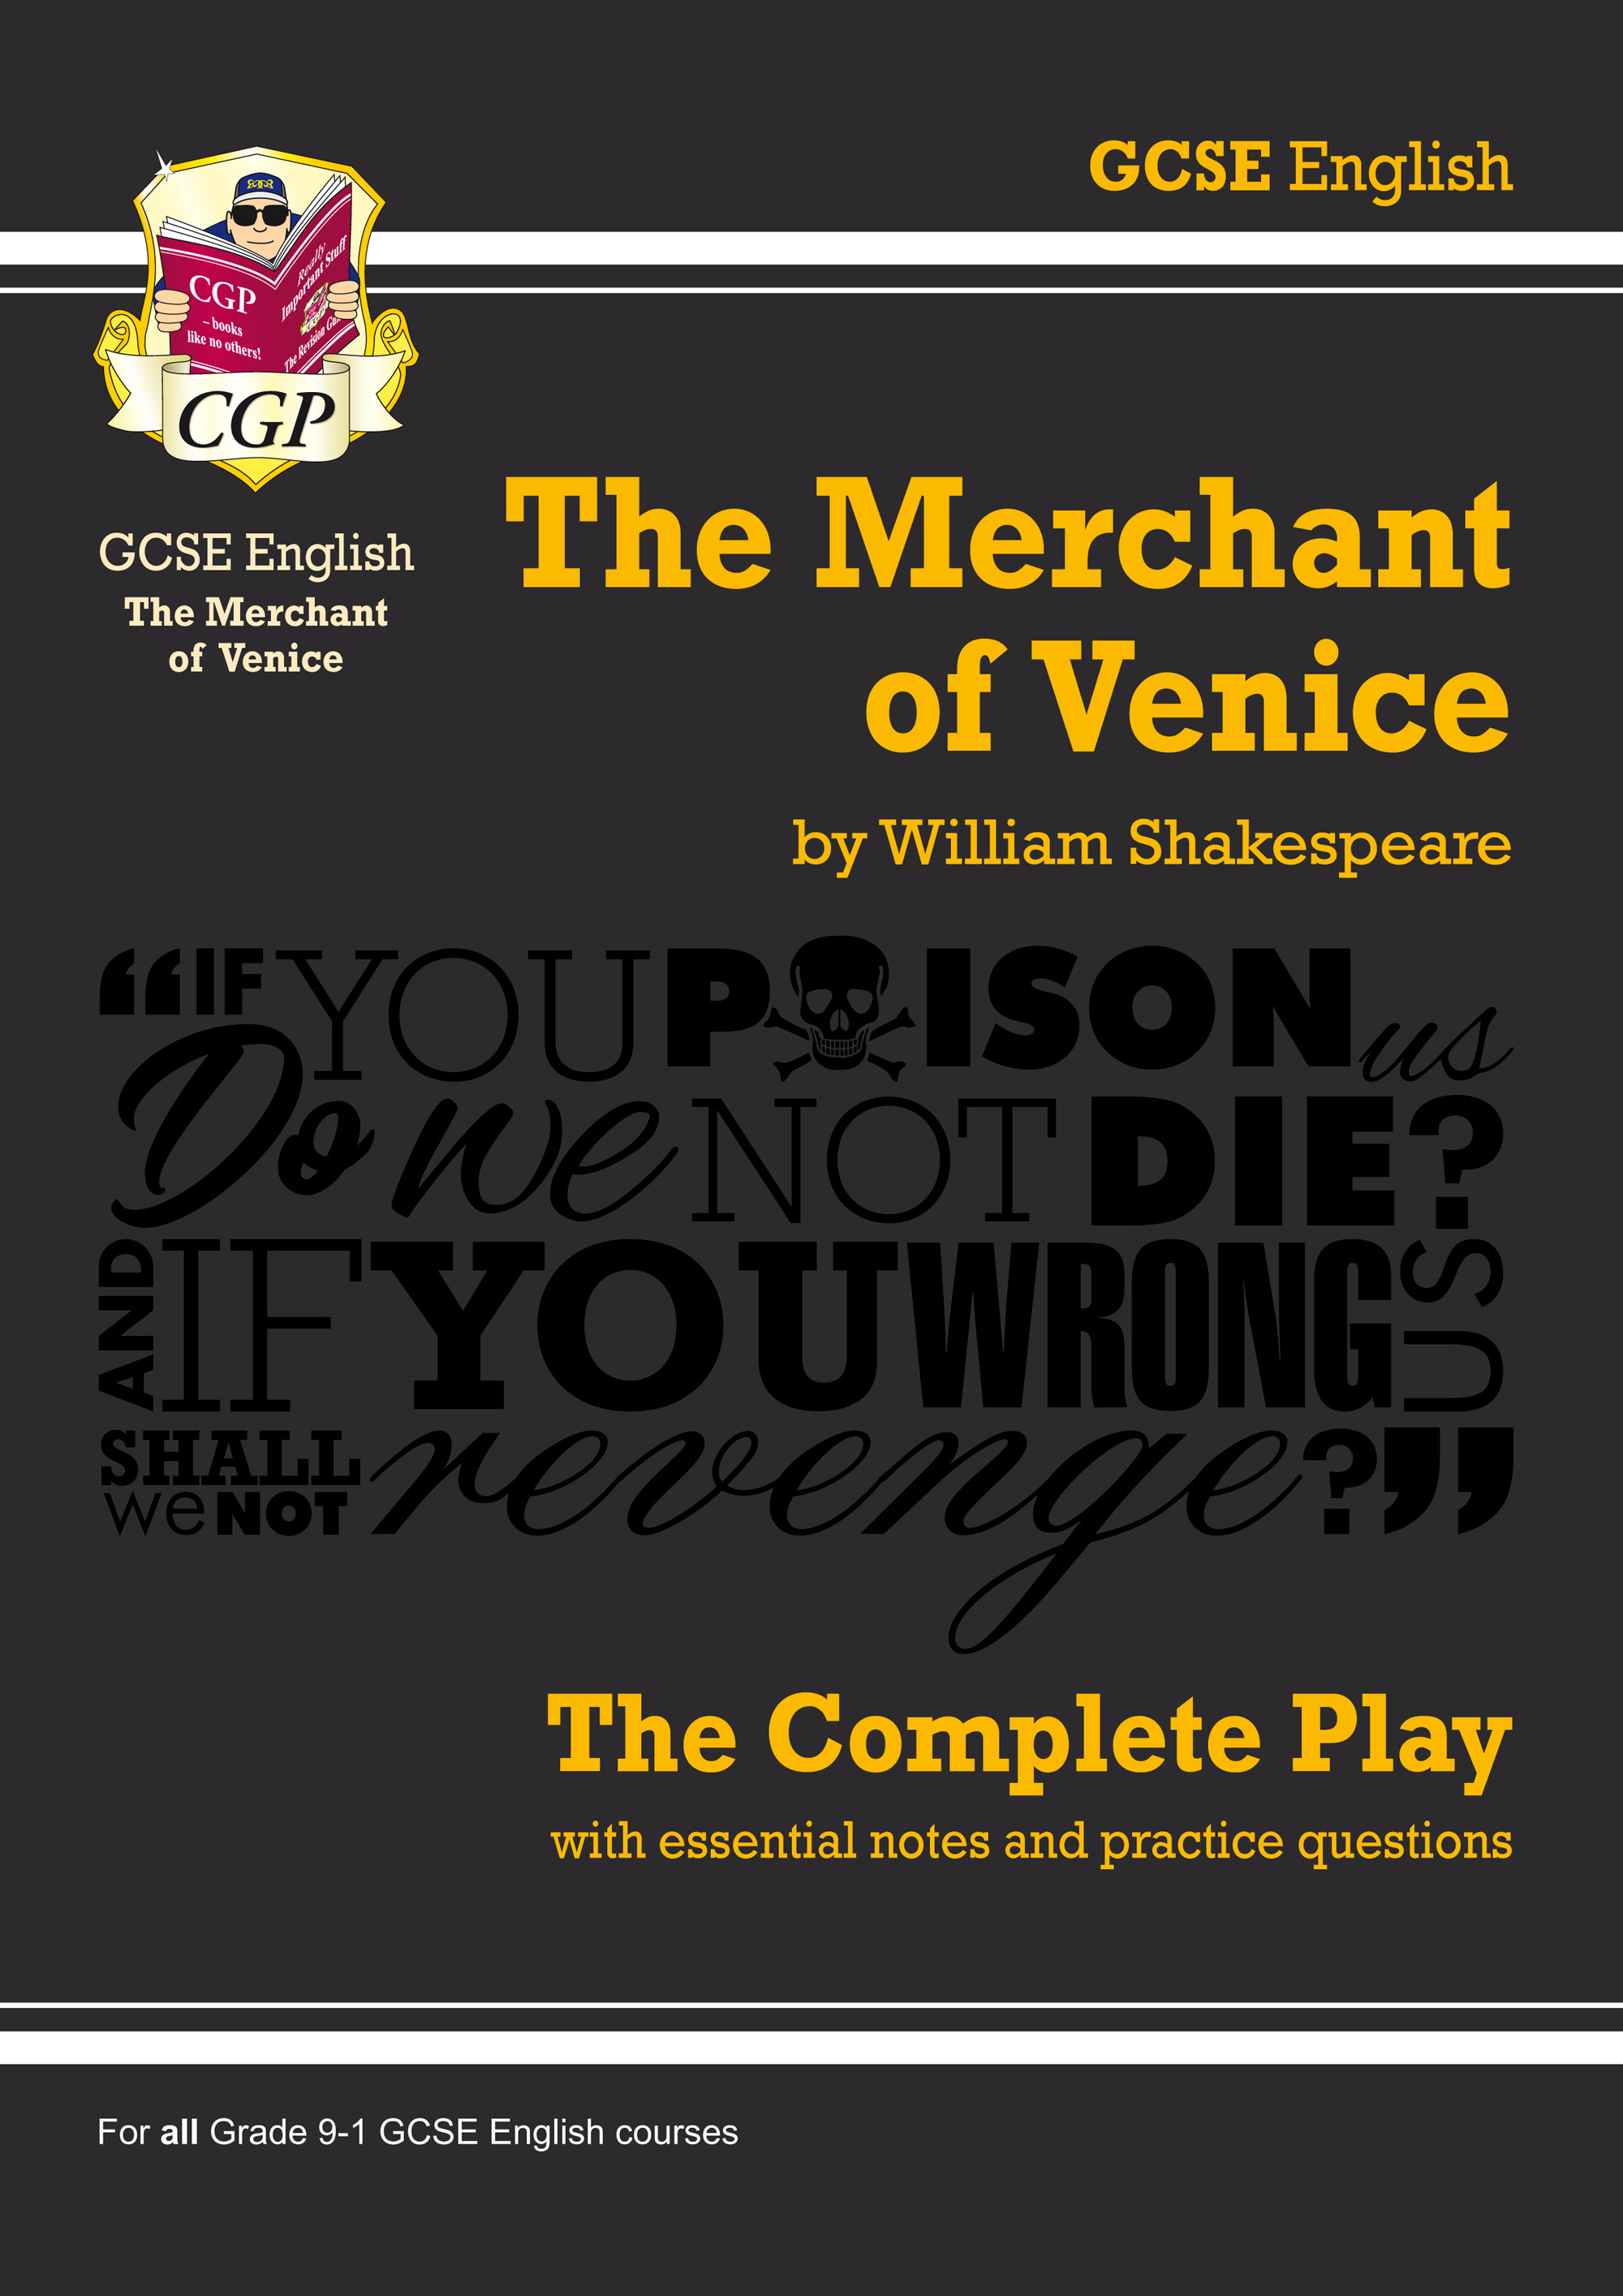 EPMV41 - Grade 9-1 GCSE English The Merchant of Venice - The Complete Play